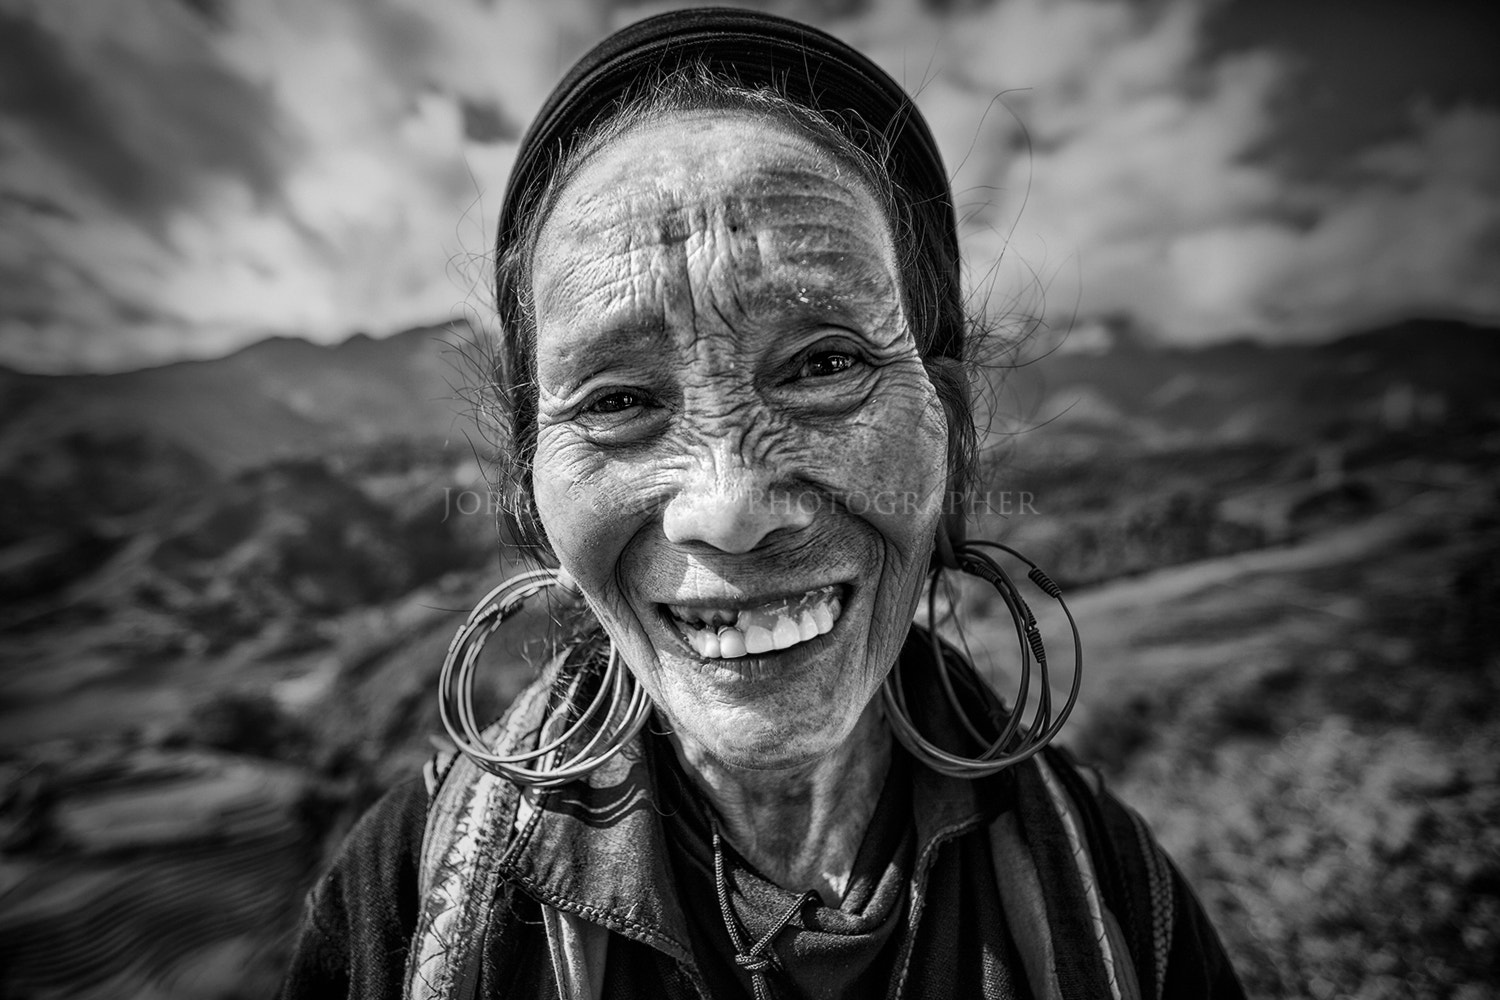 Photograph WOMAN IN SAPA by Jorge Pozuelo on 500px